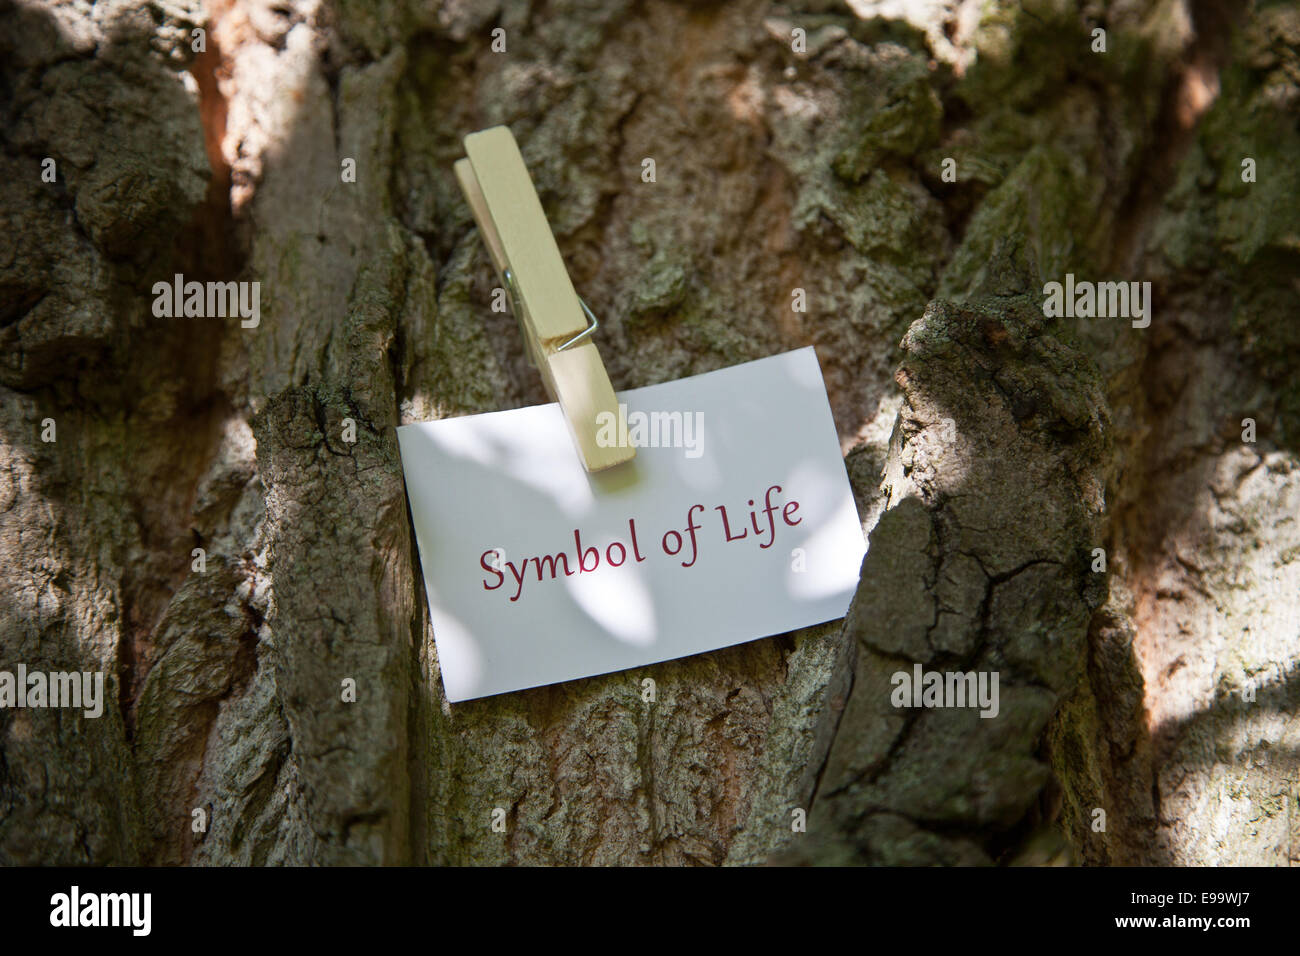 Symbol of Life on paper in nature - Stock Image